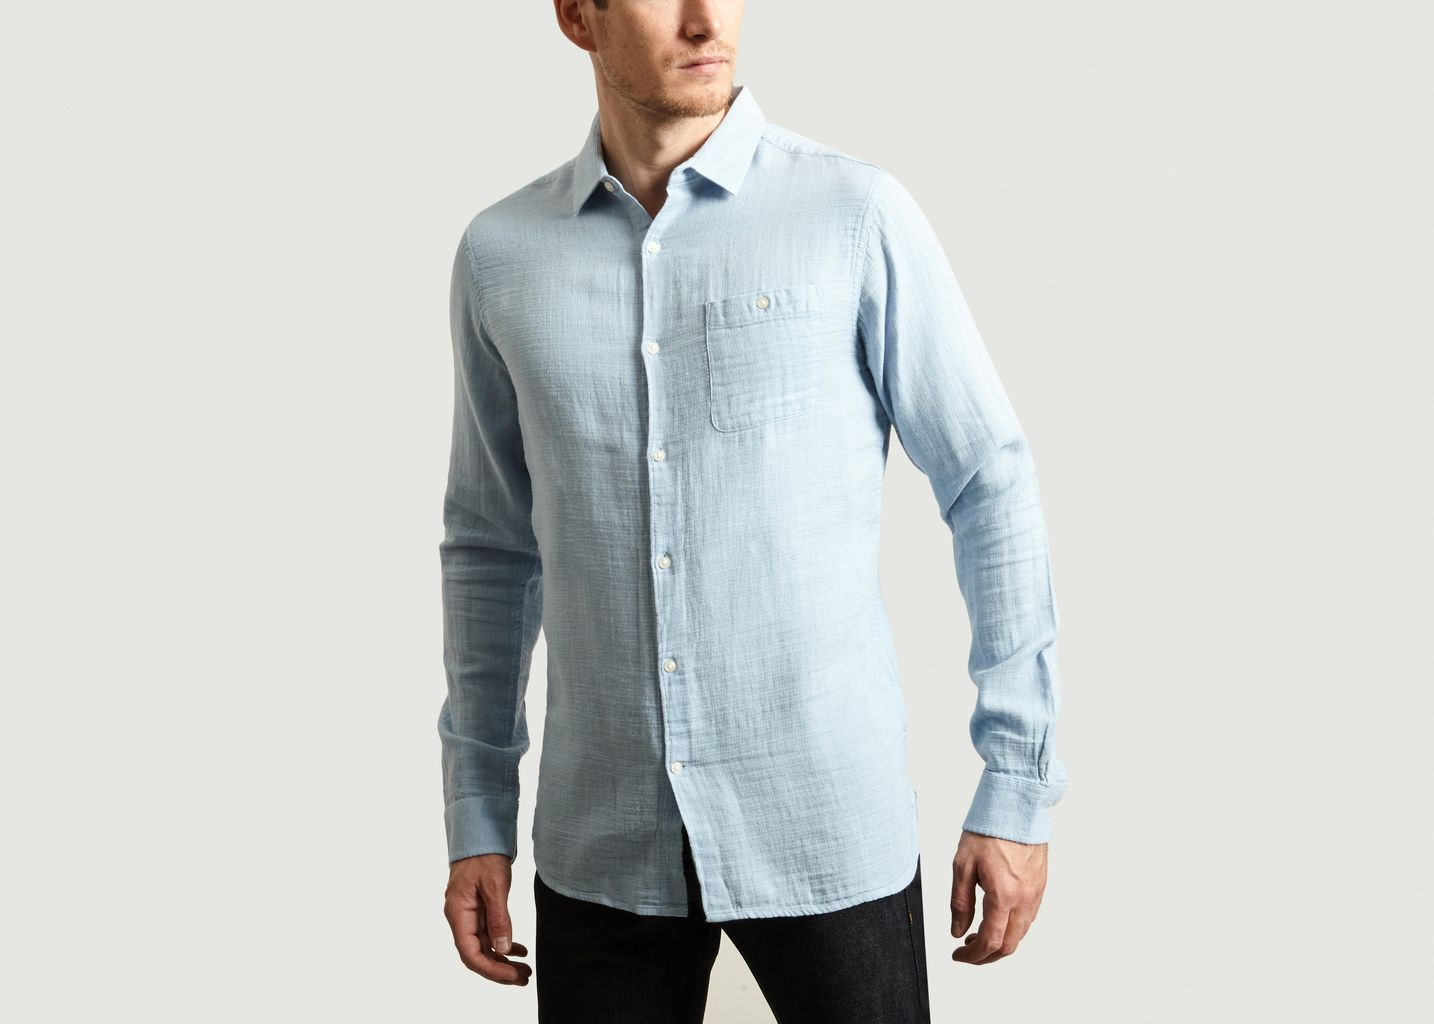 Double Layer Shirt - Knowledge Cotton Apparel